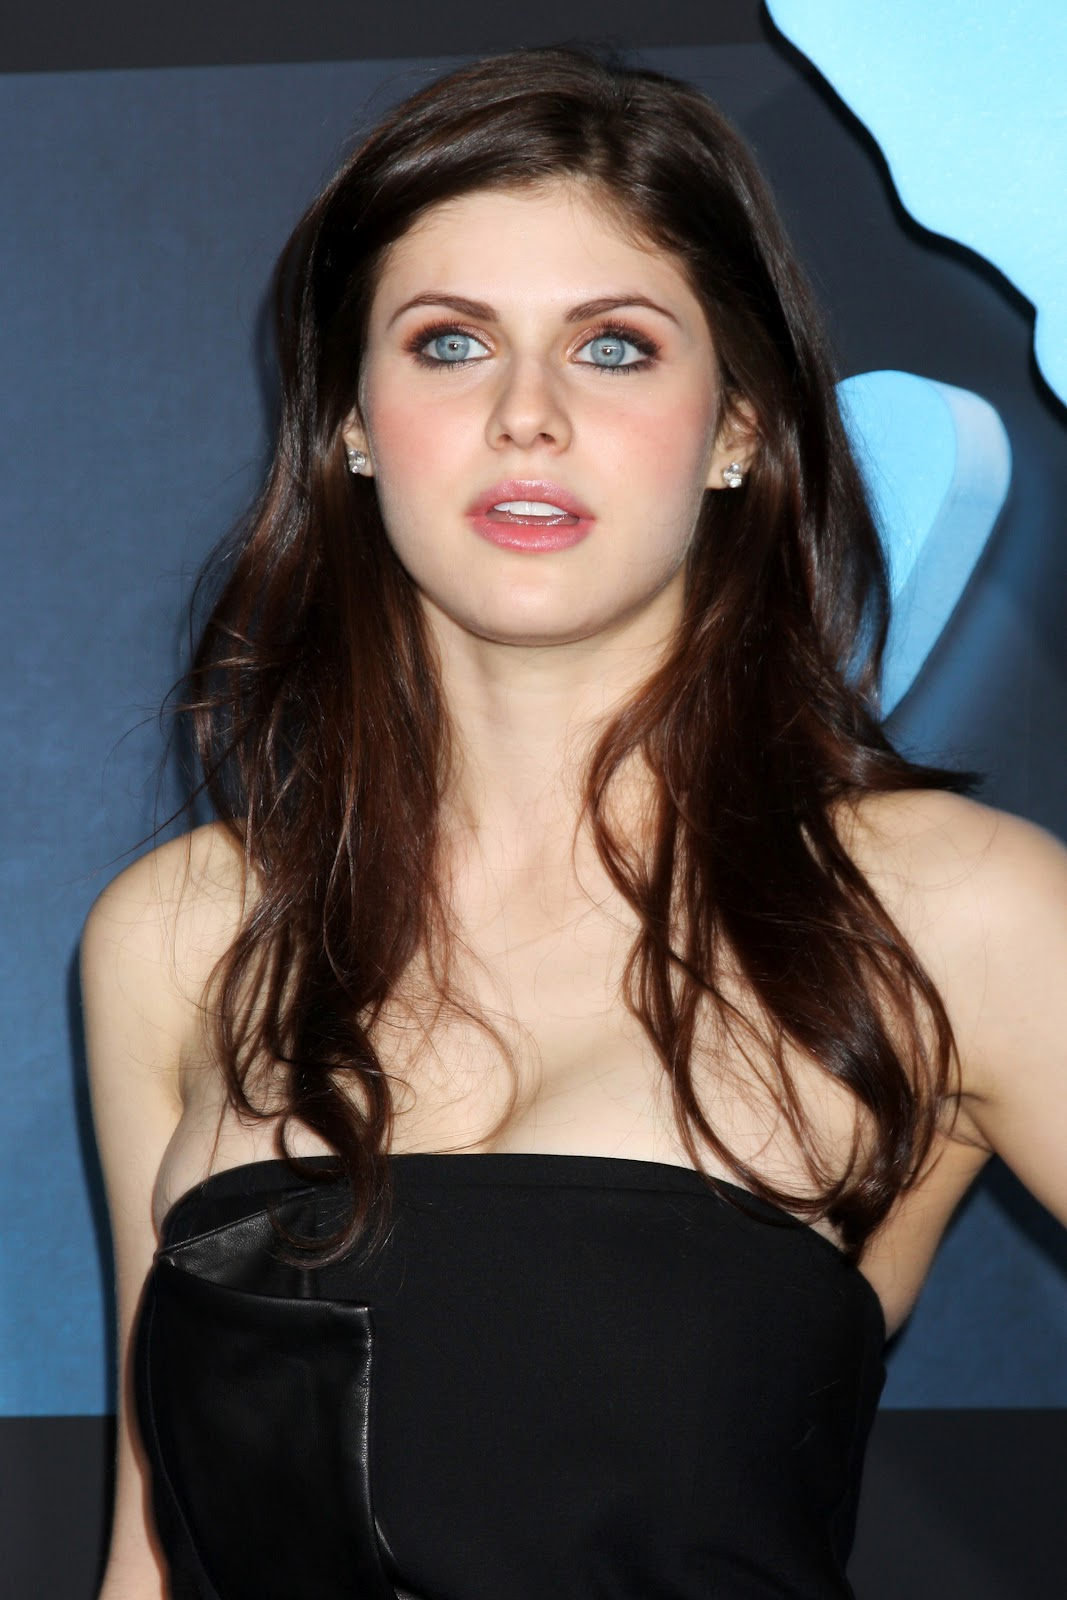 Alexandra daddario texas chainsaw - 2 part 3